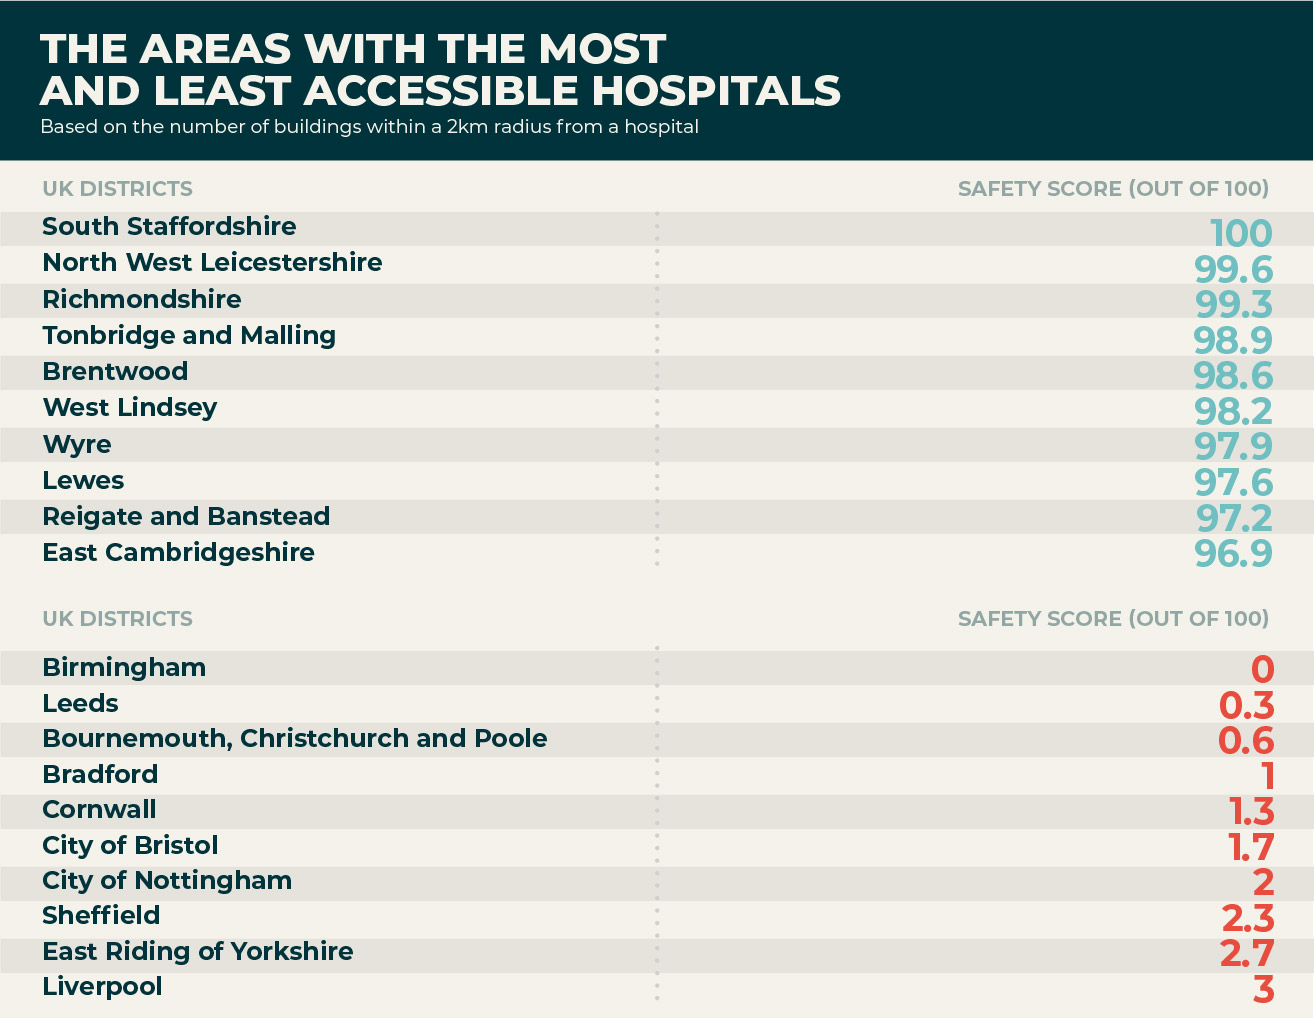 Which areas have the most accessible hospitals